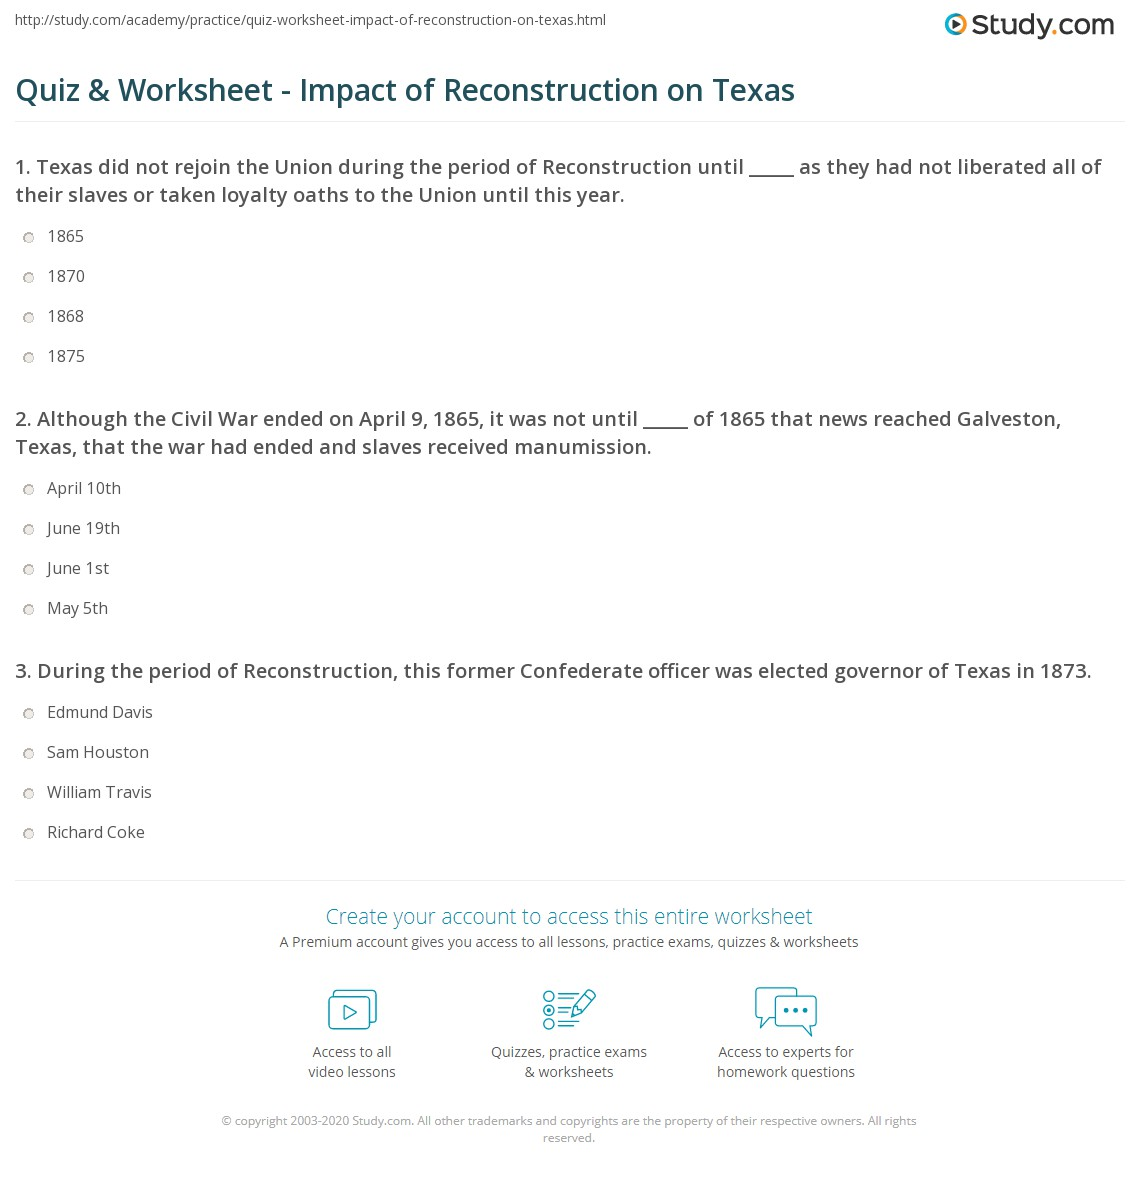 Quiz & Worksheet - Impact of Reconstruction on Texas | Study.com